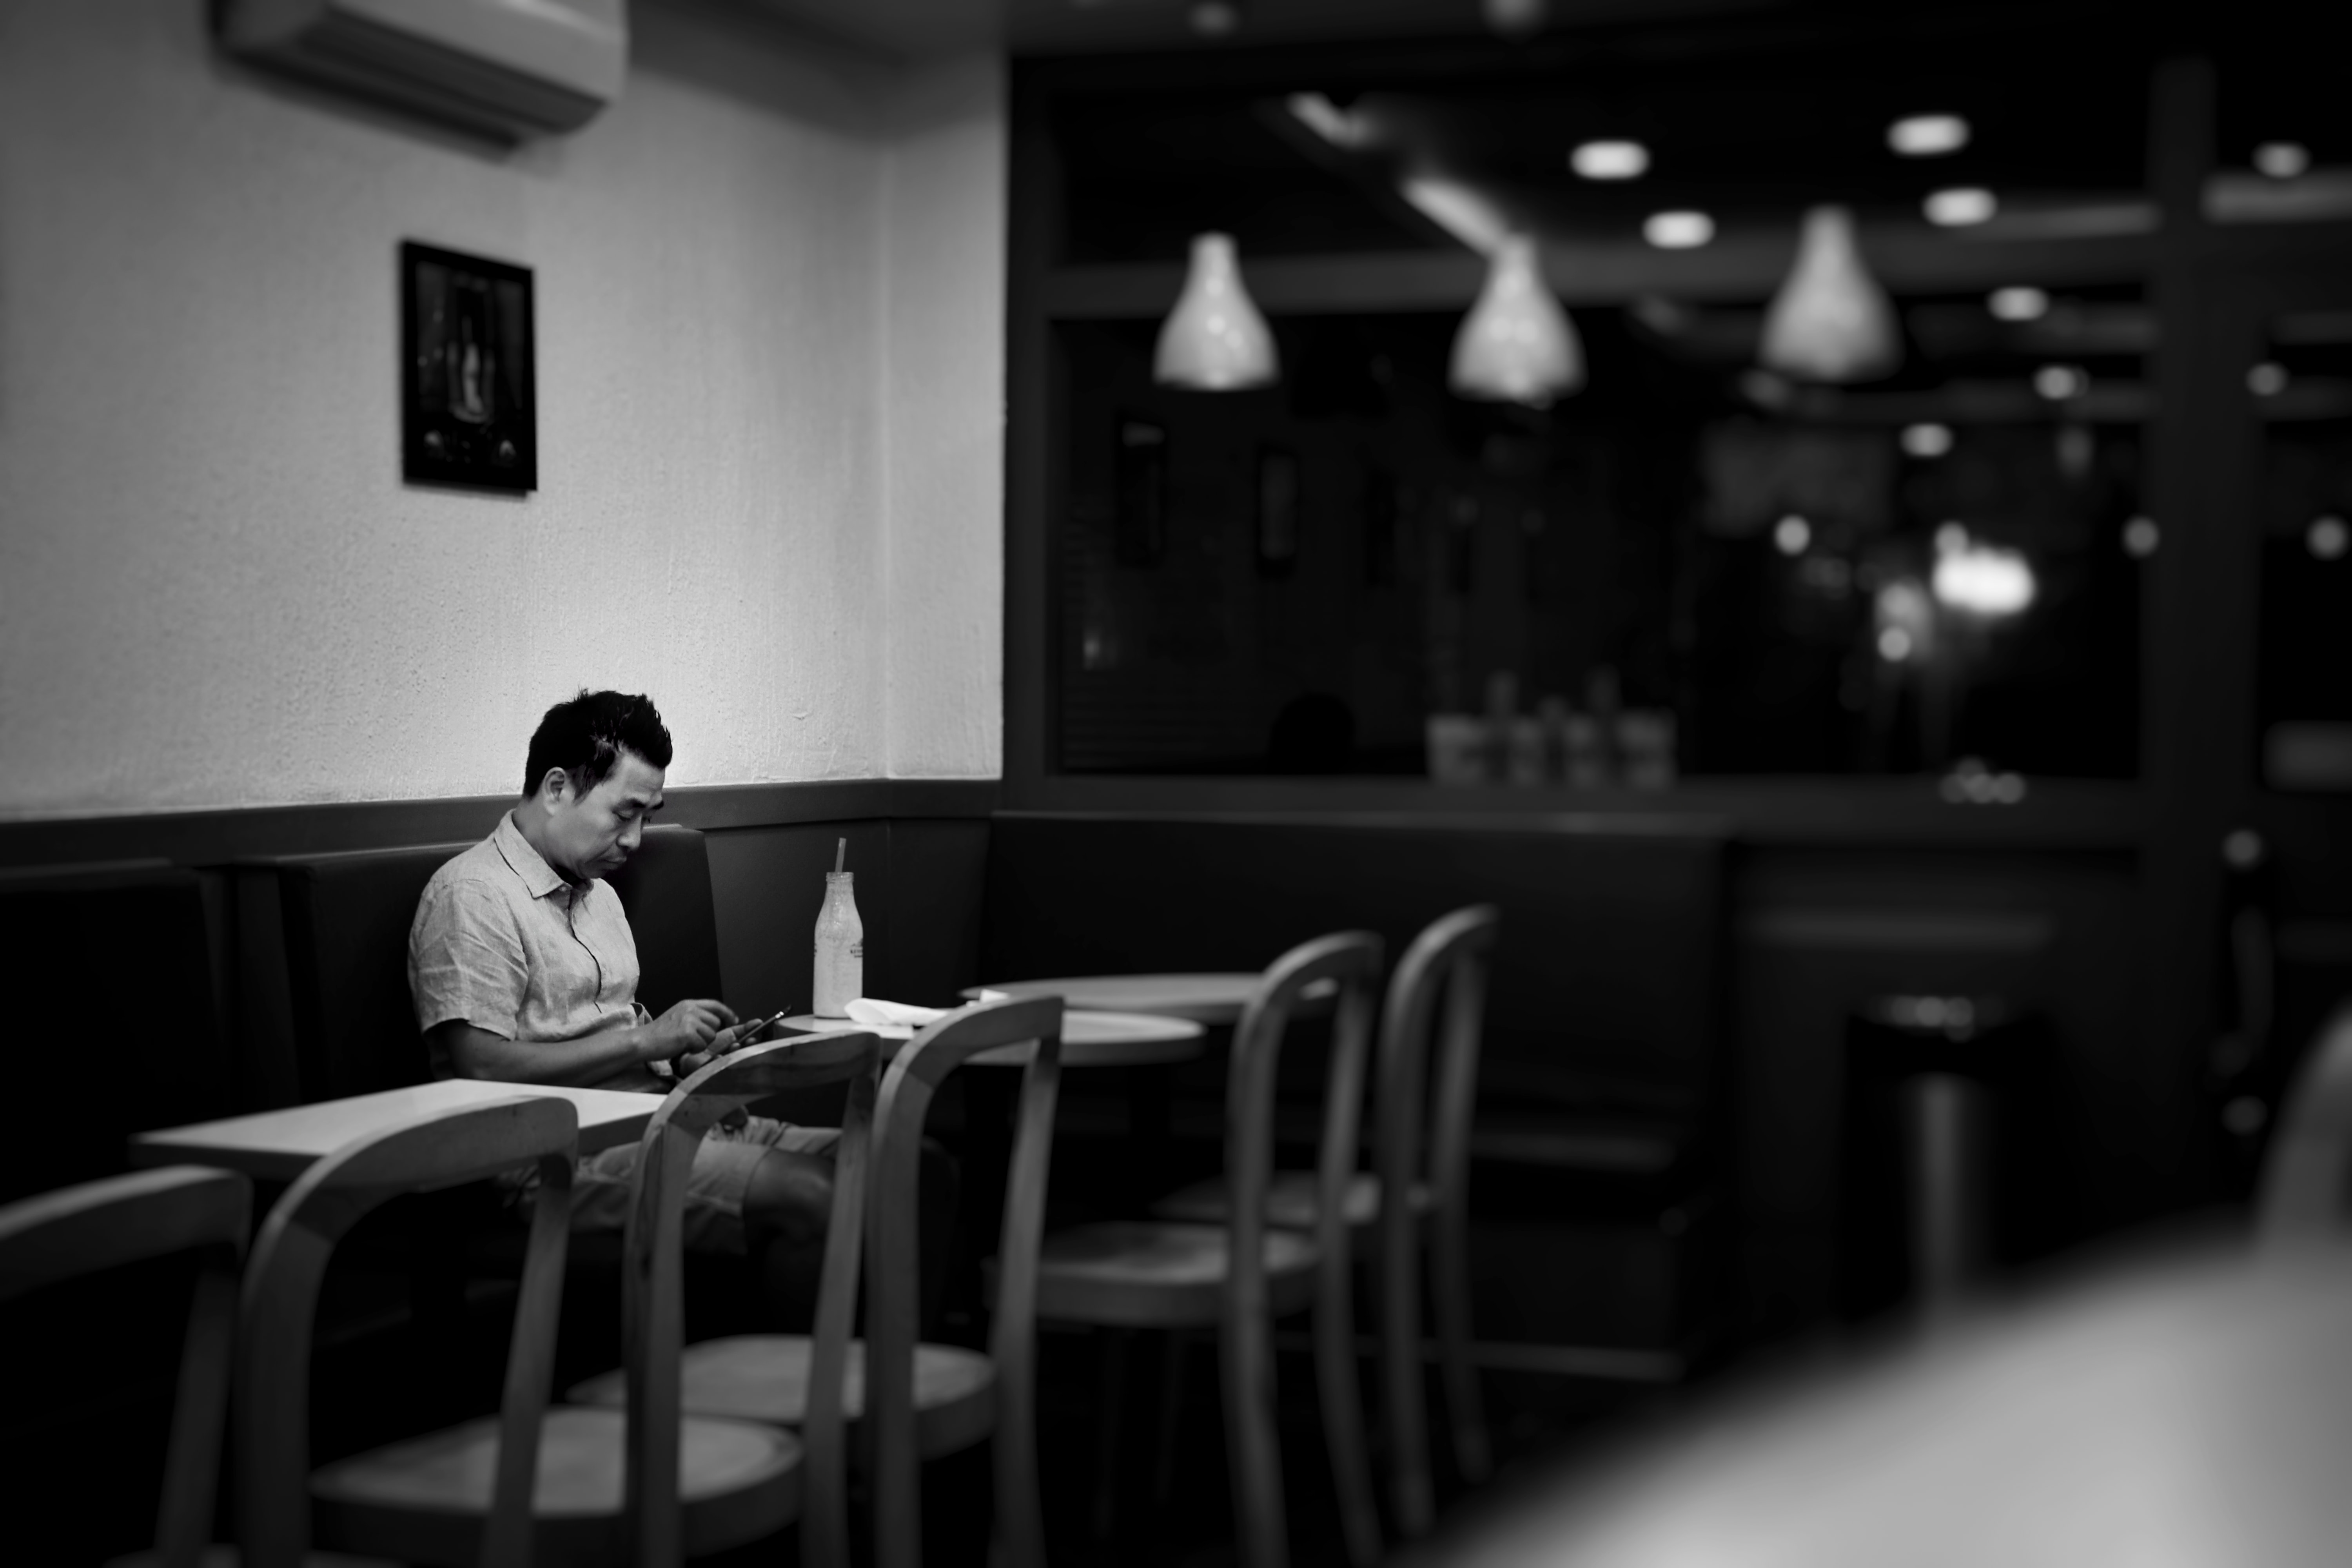 Man waits for his takeaway in a restaurant | Photo: Unsplash